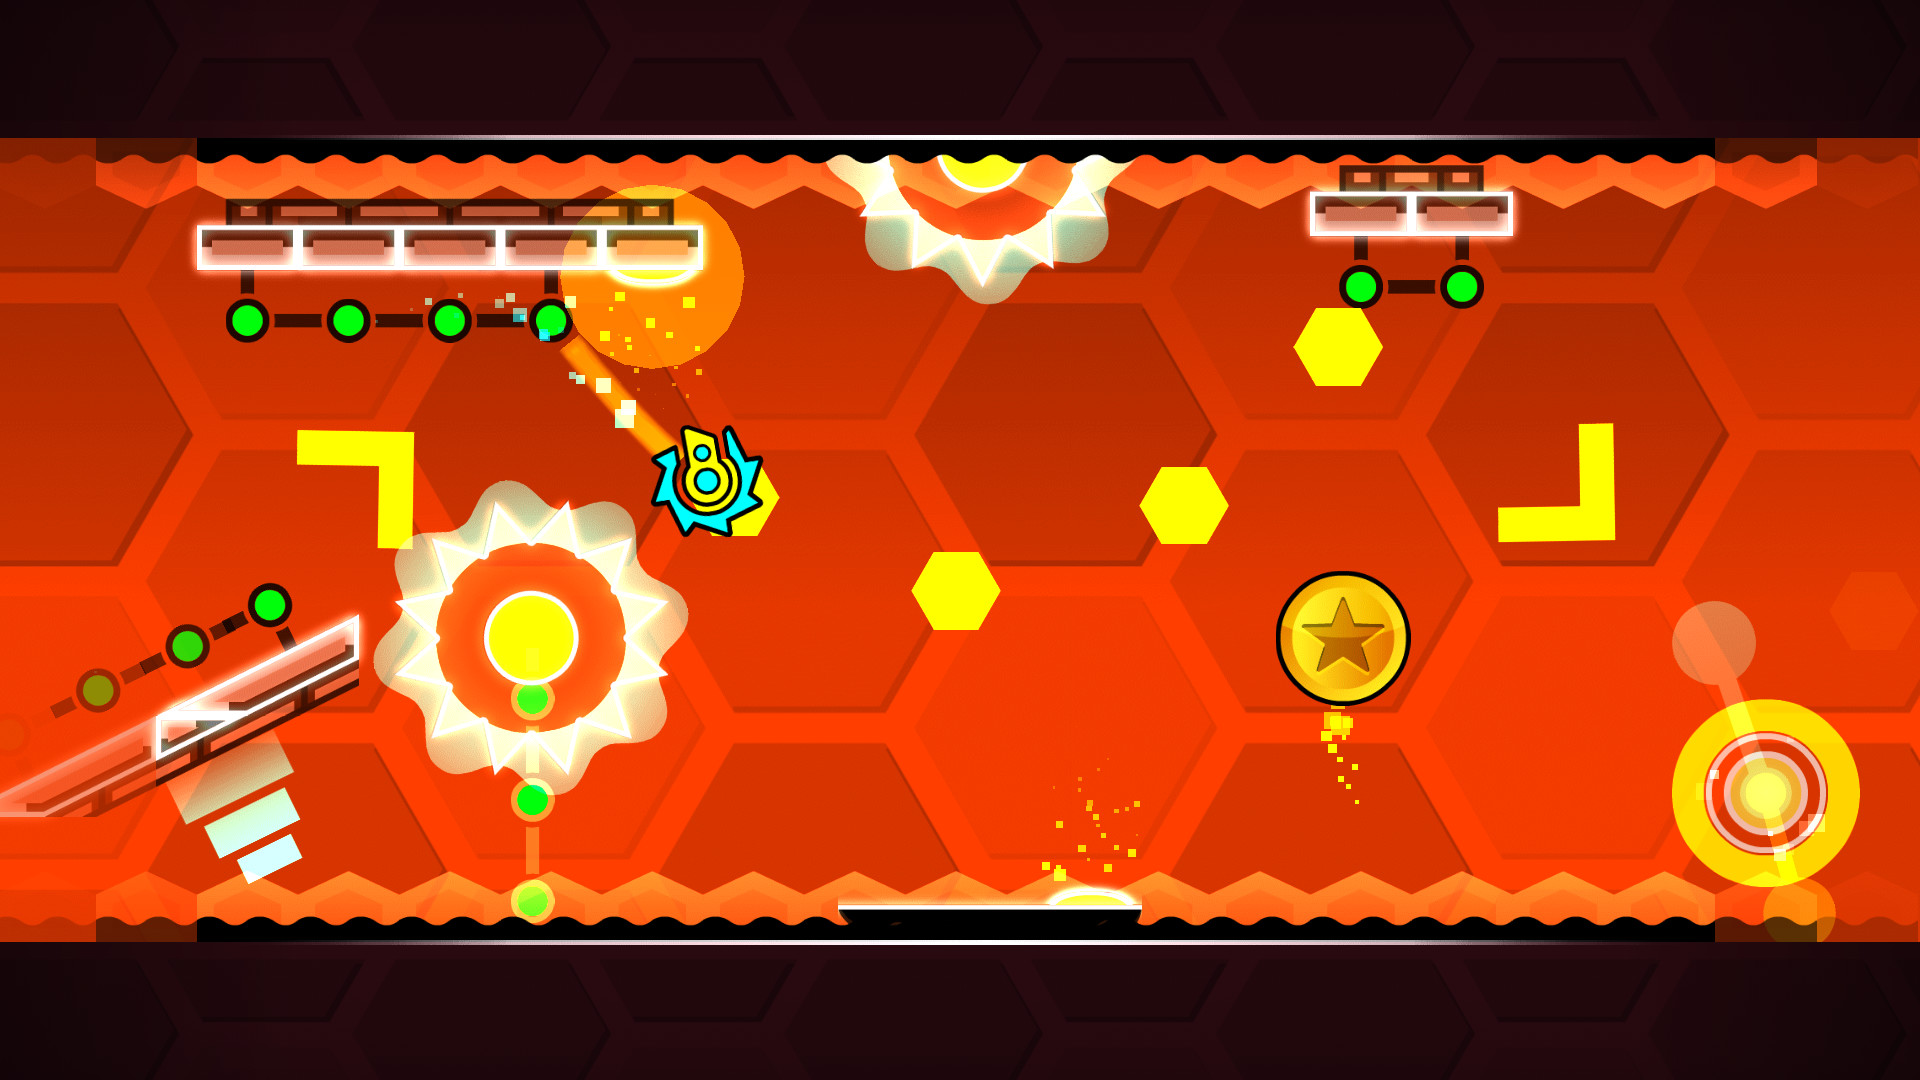 geometry dash full game download free